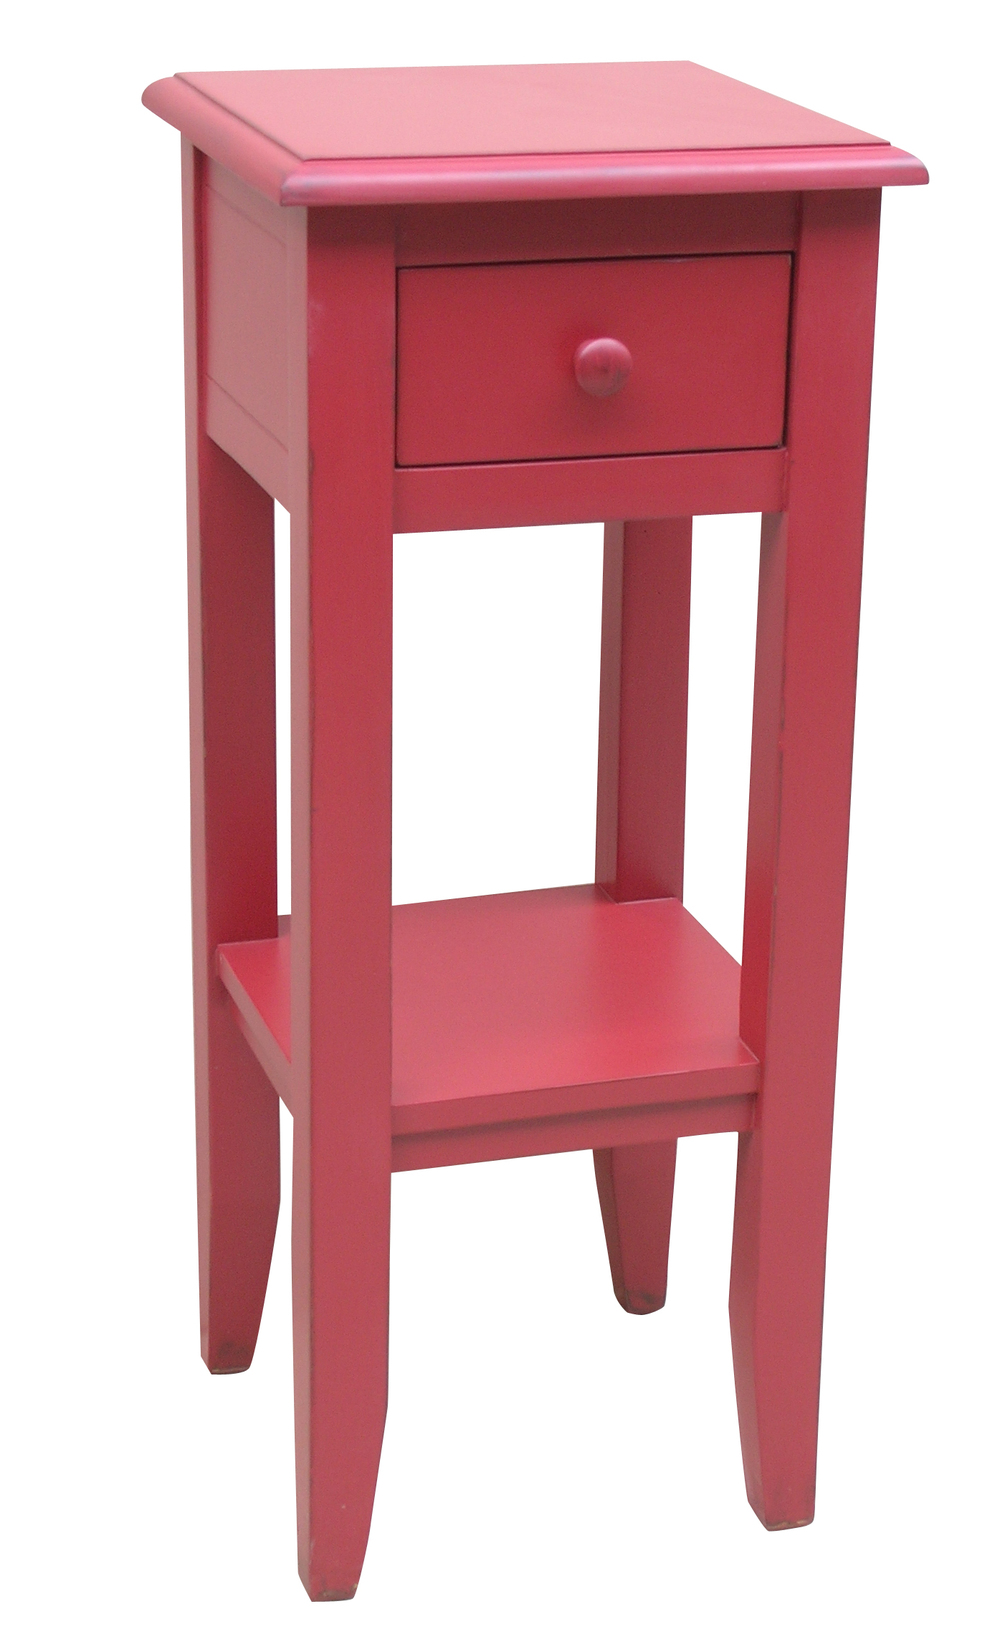 Trade Winds Furniture - Mission Plant Stand